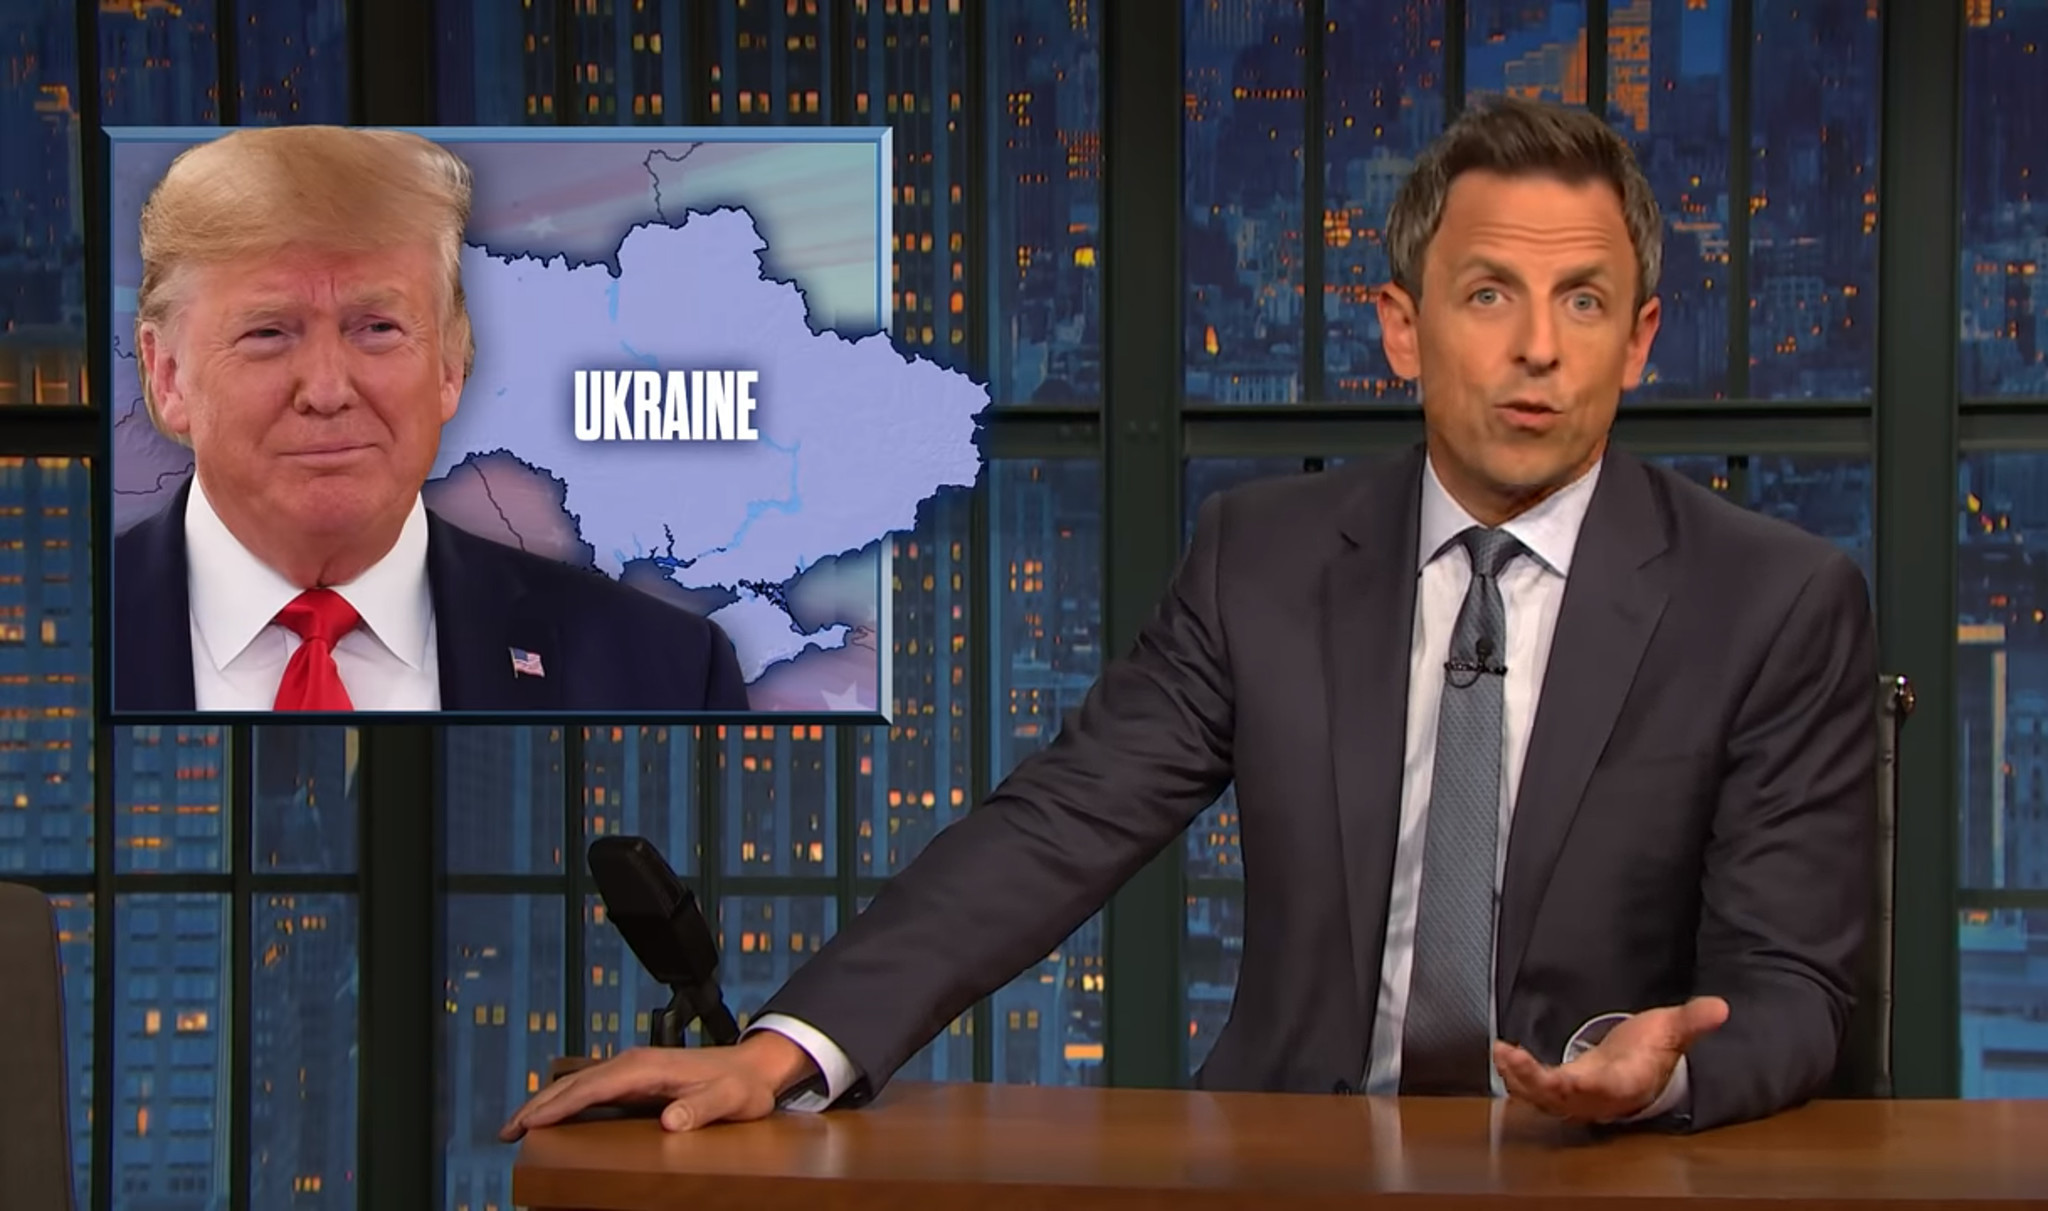 Trump supporters will have the option to 'skip politics' when Seth Meyers' stand-up special hits Netflix Tuesday